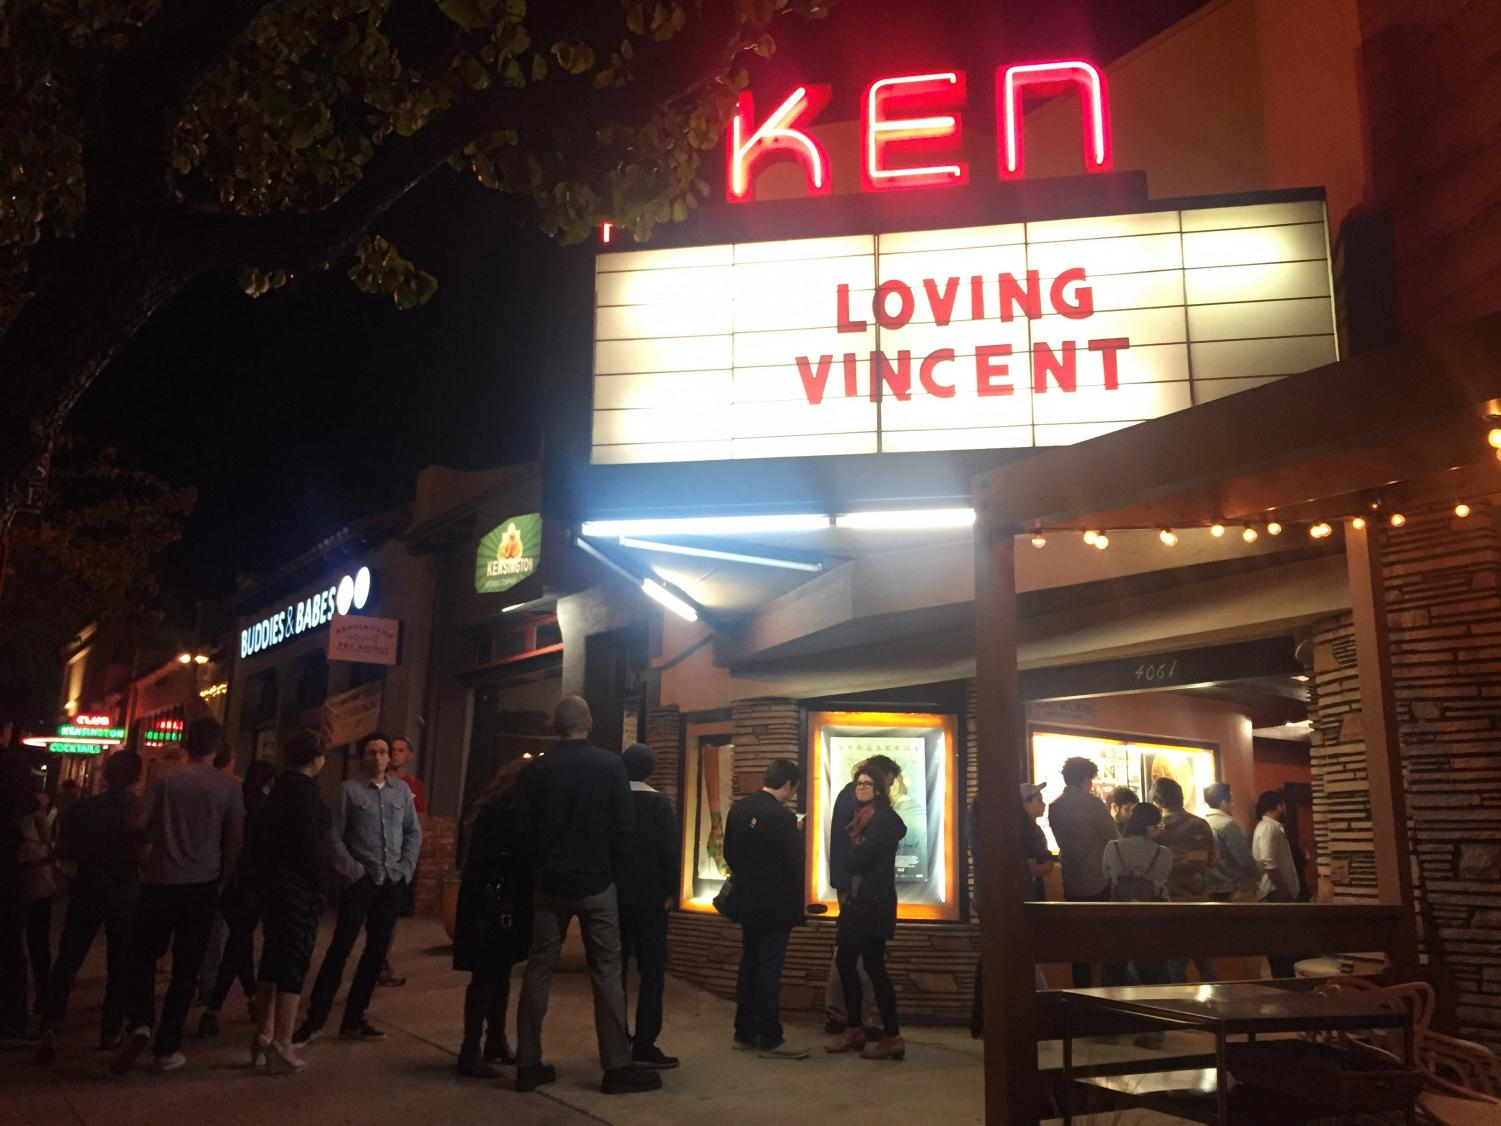 "Ken Cinema ""Loving Vincent"" front sign"